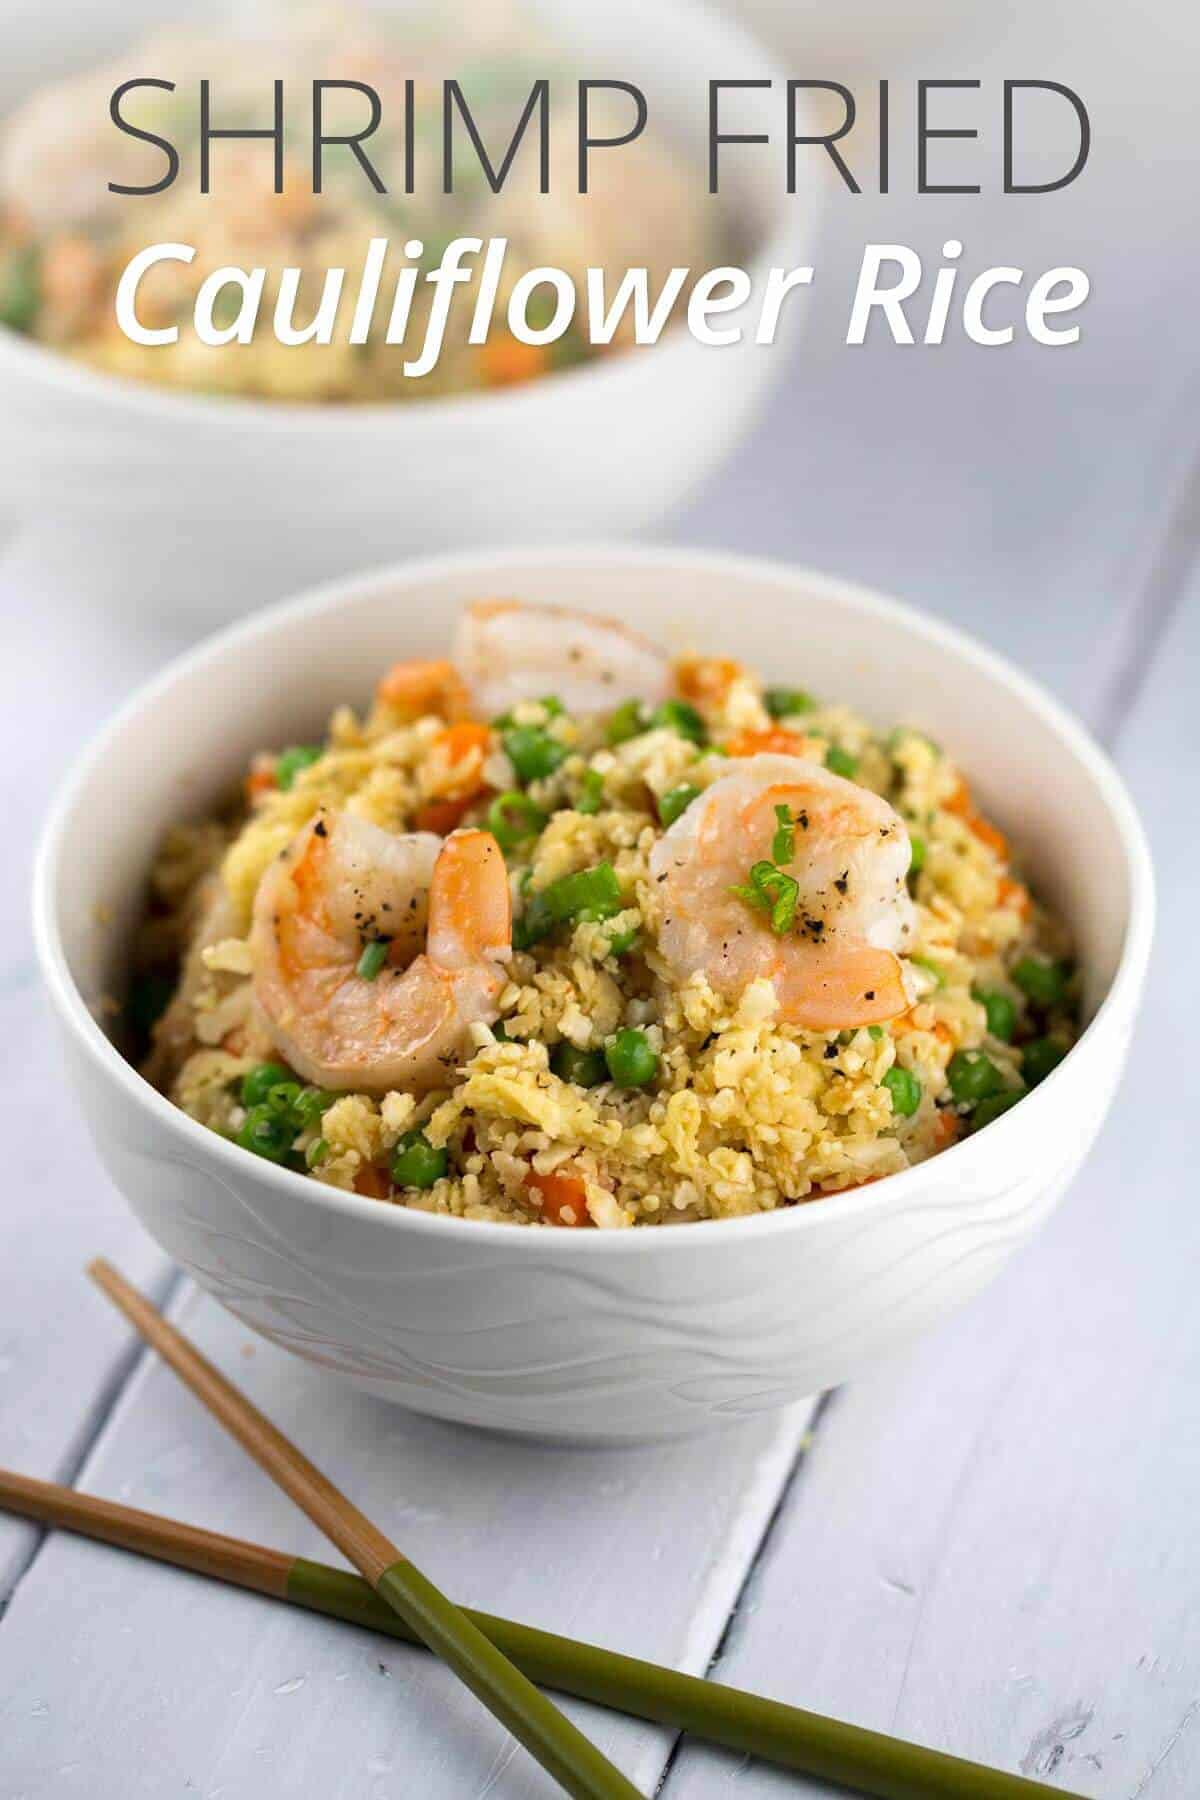 asian-inspired-shrimp-fried-cauliflower-rice-healthy-recipe